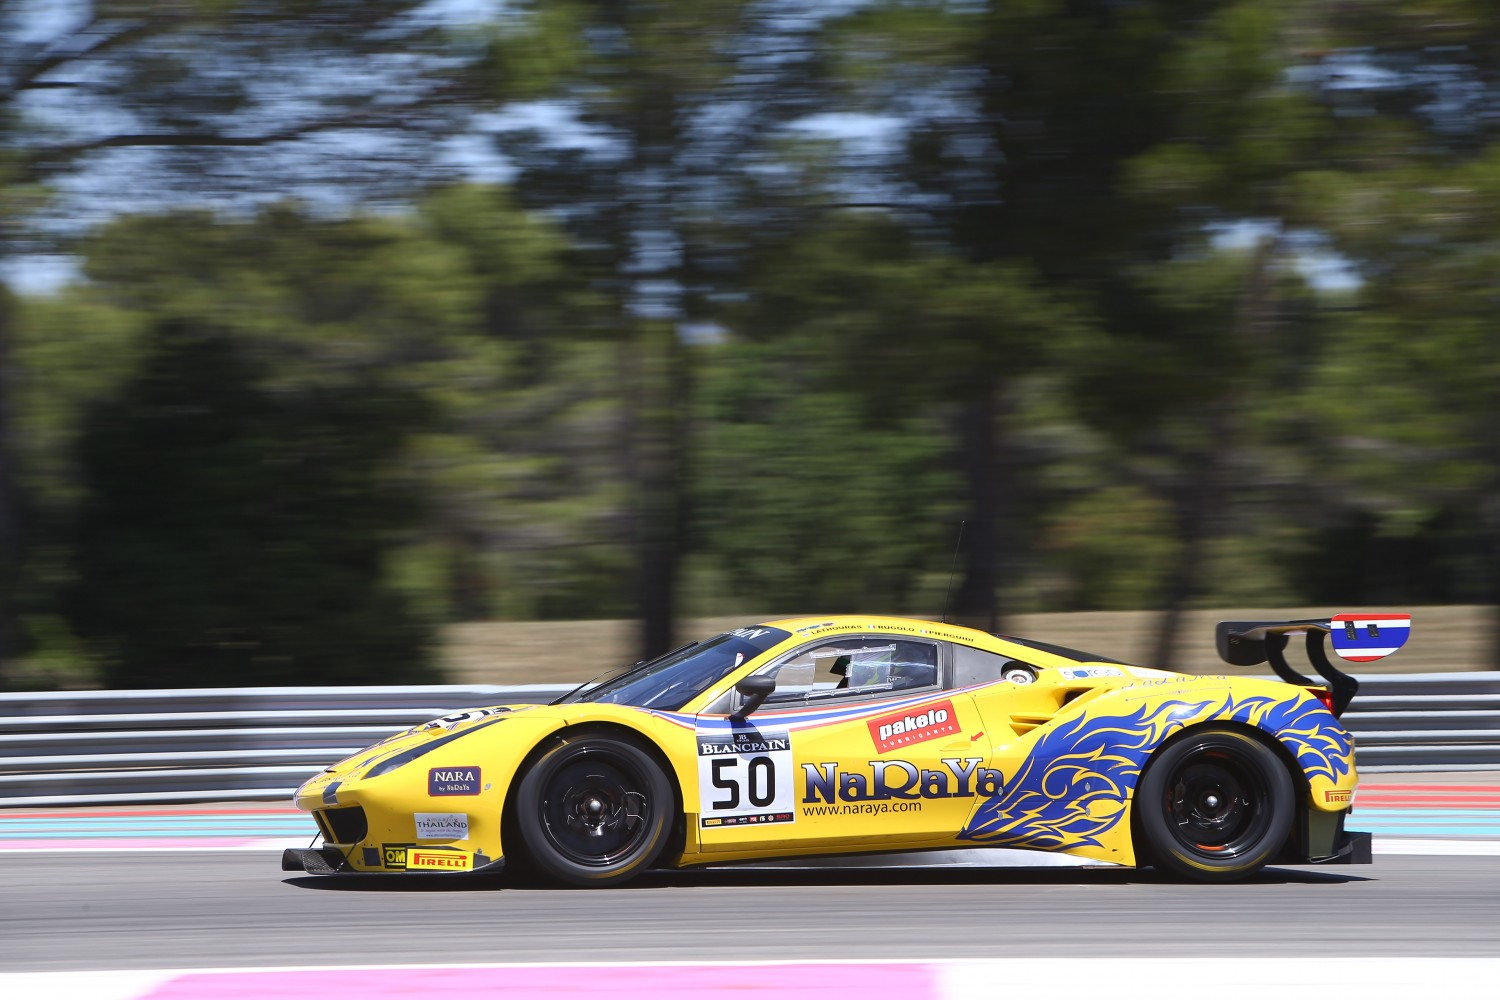 Alessandro Pier Guidi takes hard fought pole at Le Castellet